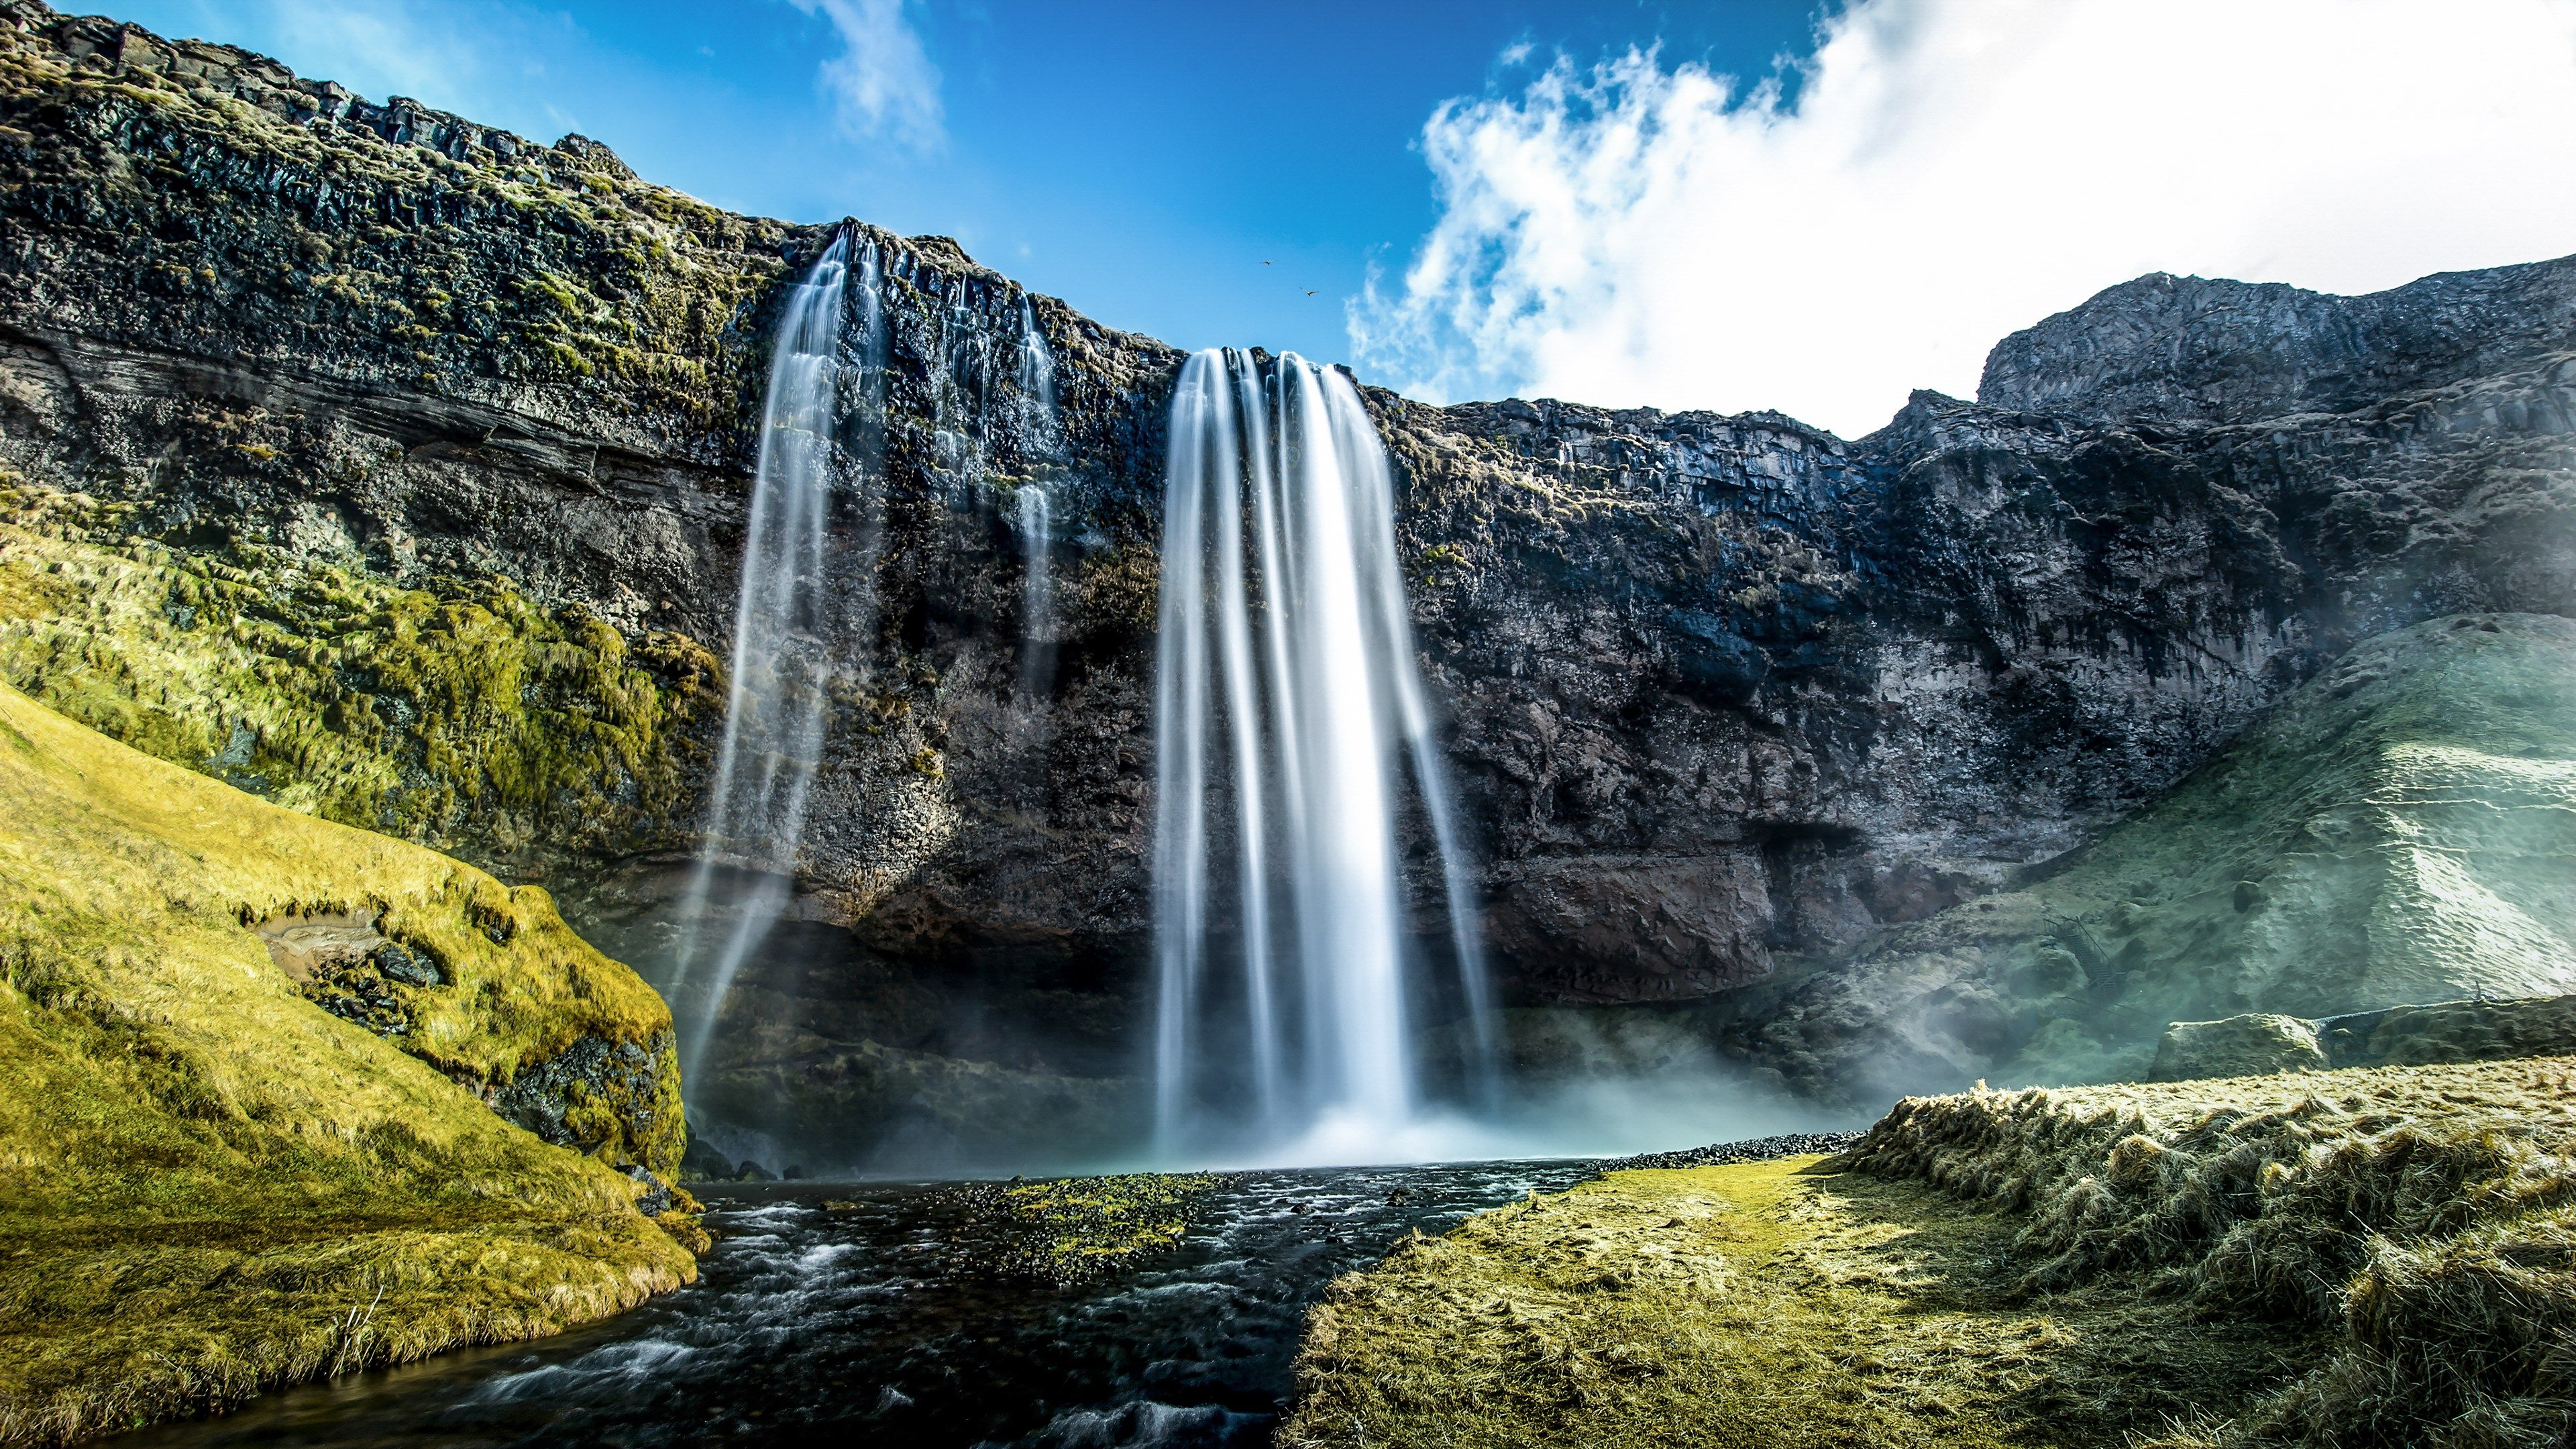 4k High Resolution Mac Wallpaper 3840x2160 Seljalandsfoss Waterfall Iceland Landscape Waterfall